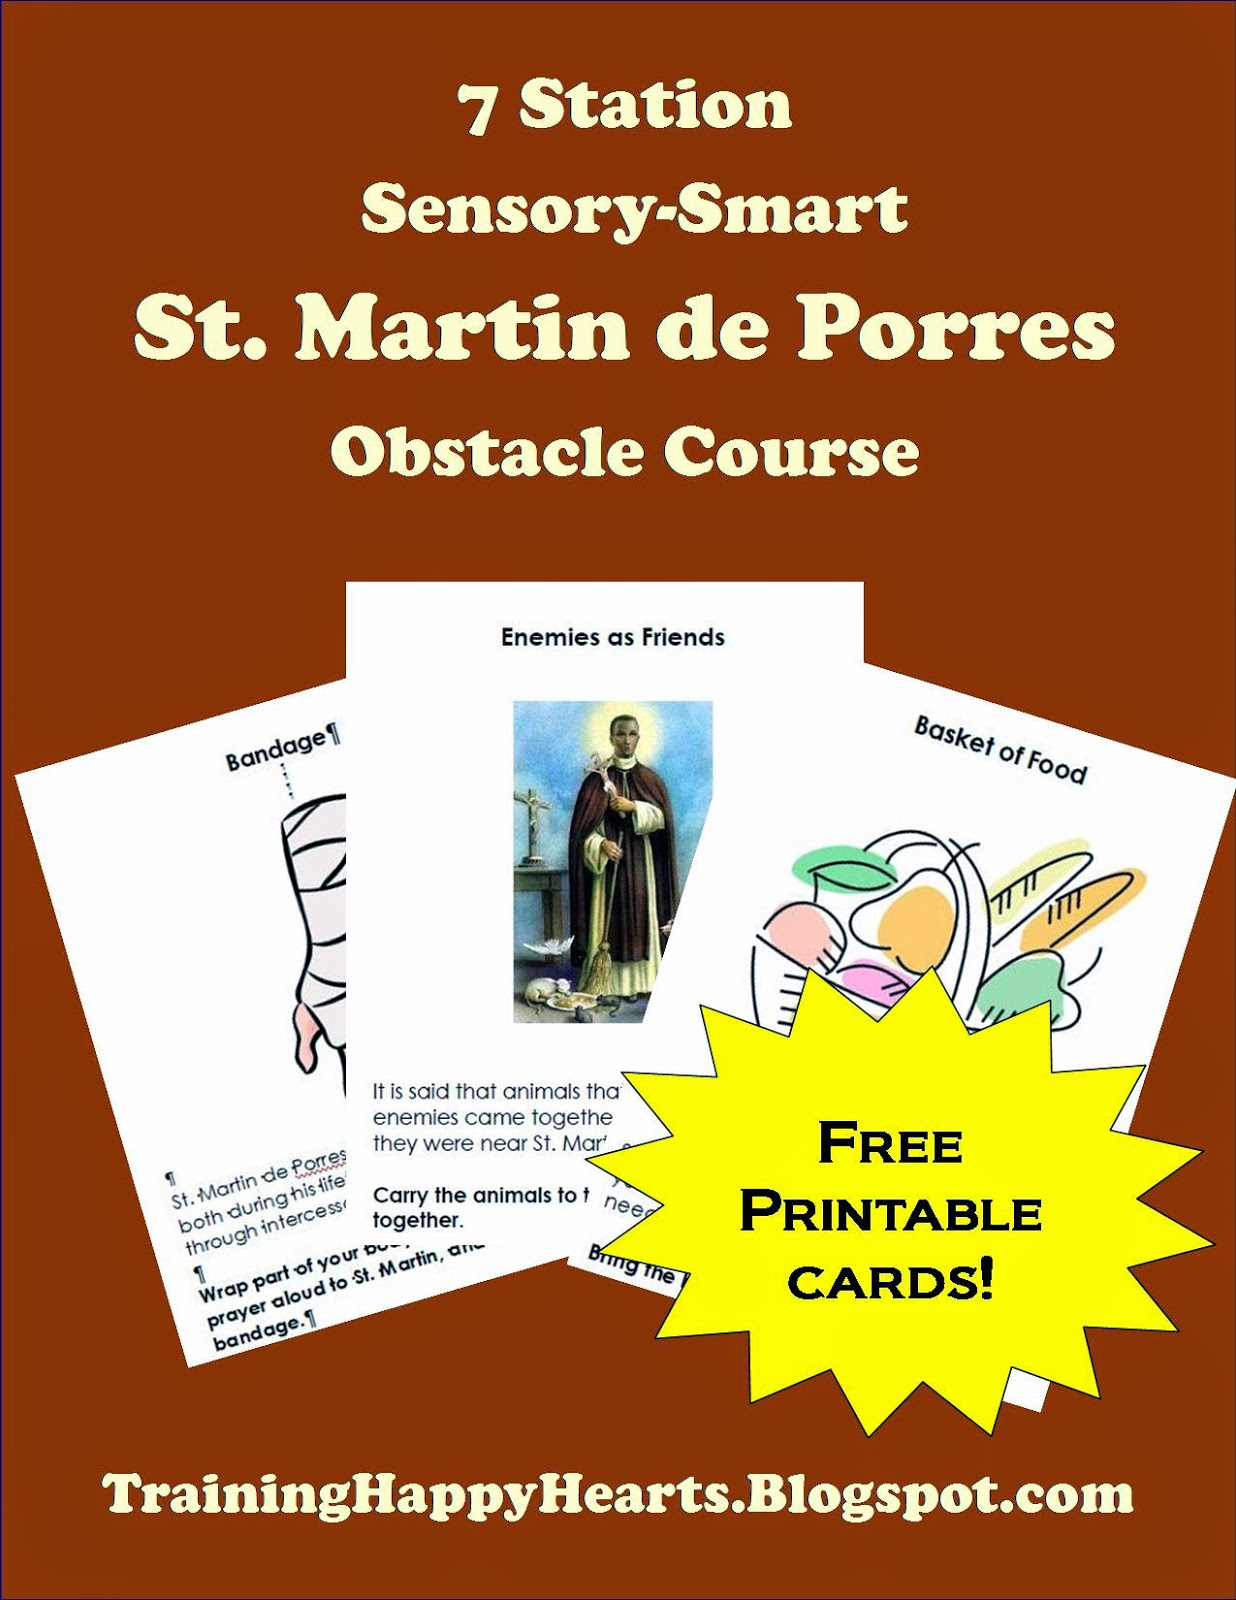 Training Happy Hearts Celebrate St Martin De Porres